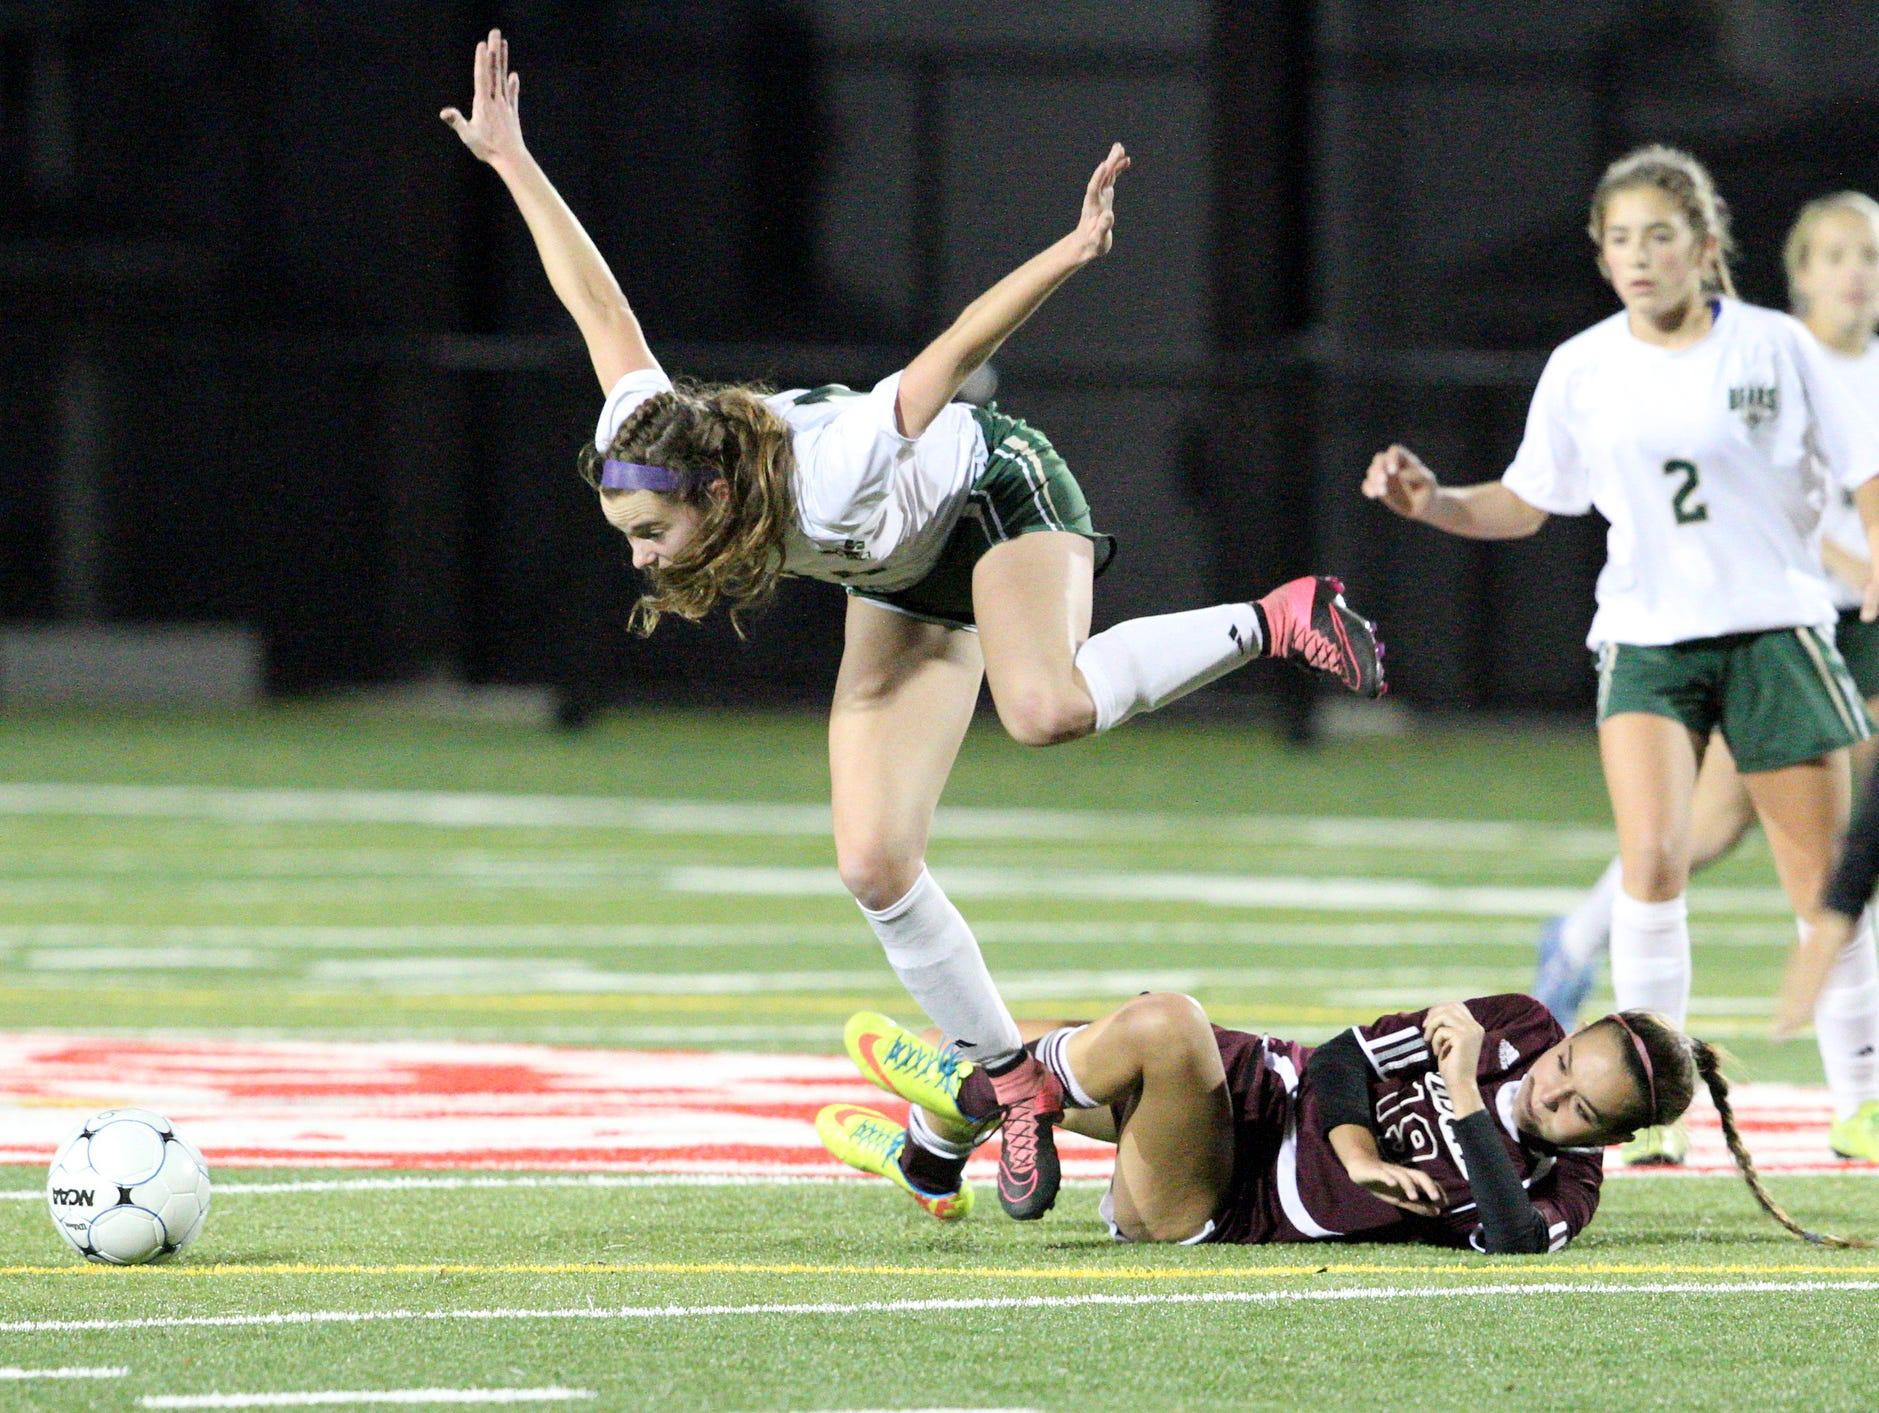 Vestal's Madeline Beaulieu leaps over Johnson City's Brittany Carpenter Friday during the Section 4 Class A final.